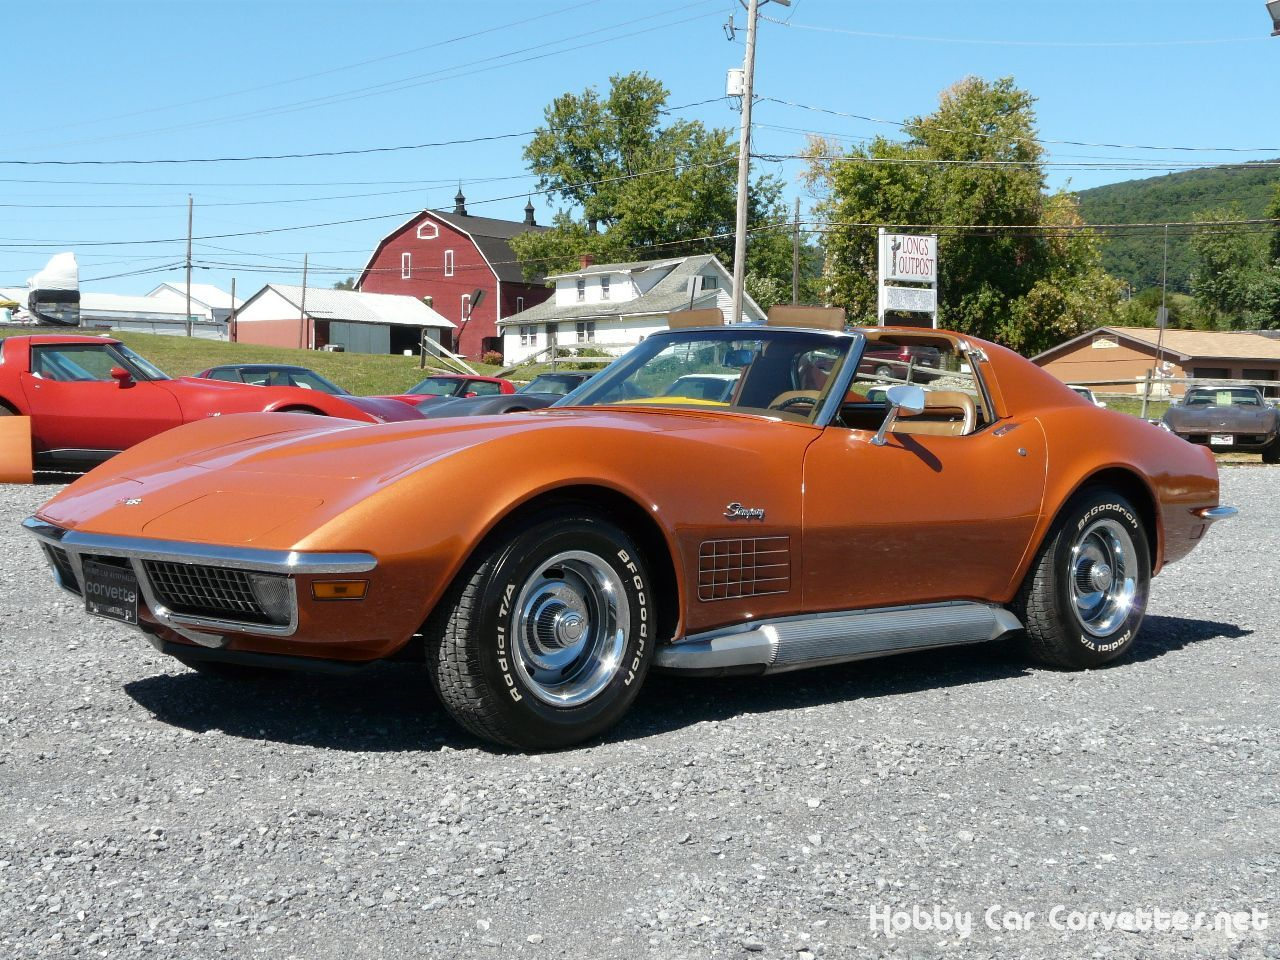 1971 chevy corvette stingray nevada silver with red interior corvette u s a 1 pinterest red interiors chevy and cars